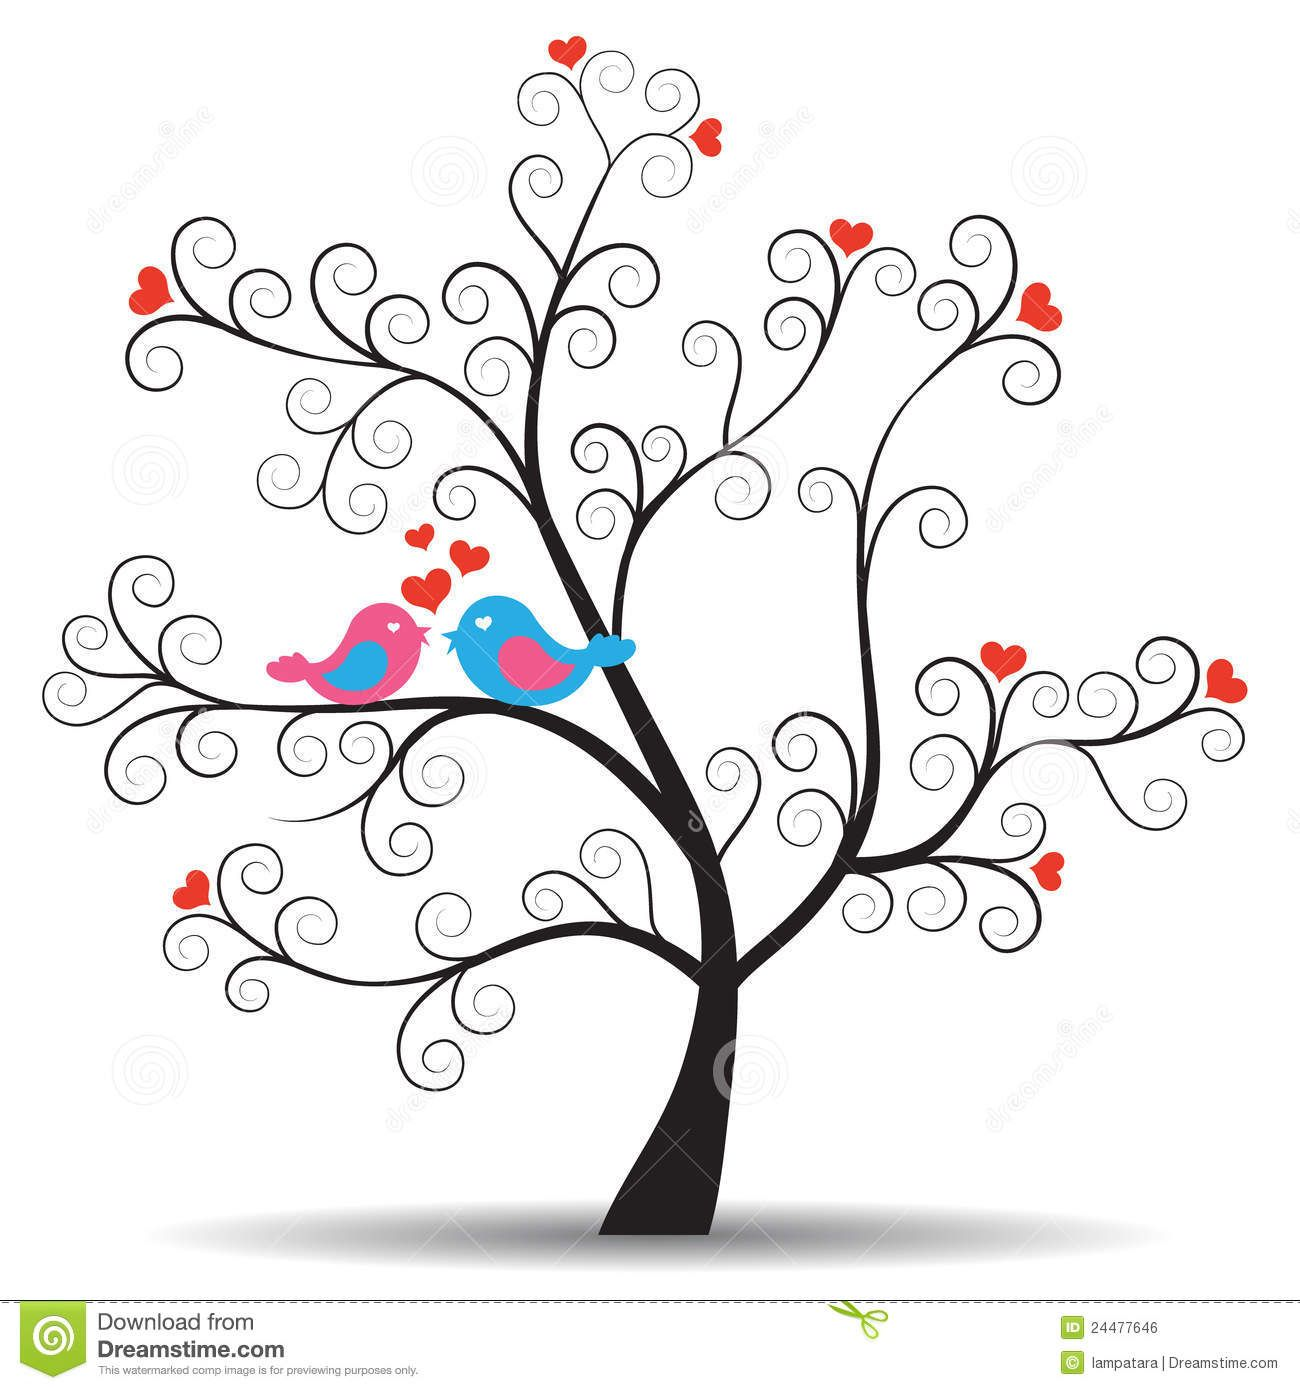 Images of and bird. Tree clipart romantic